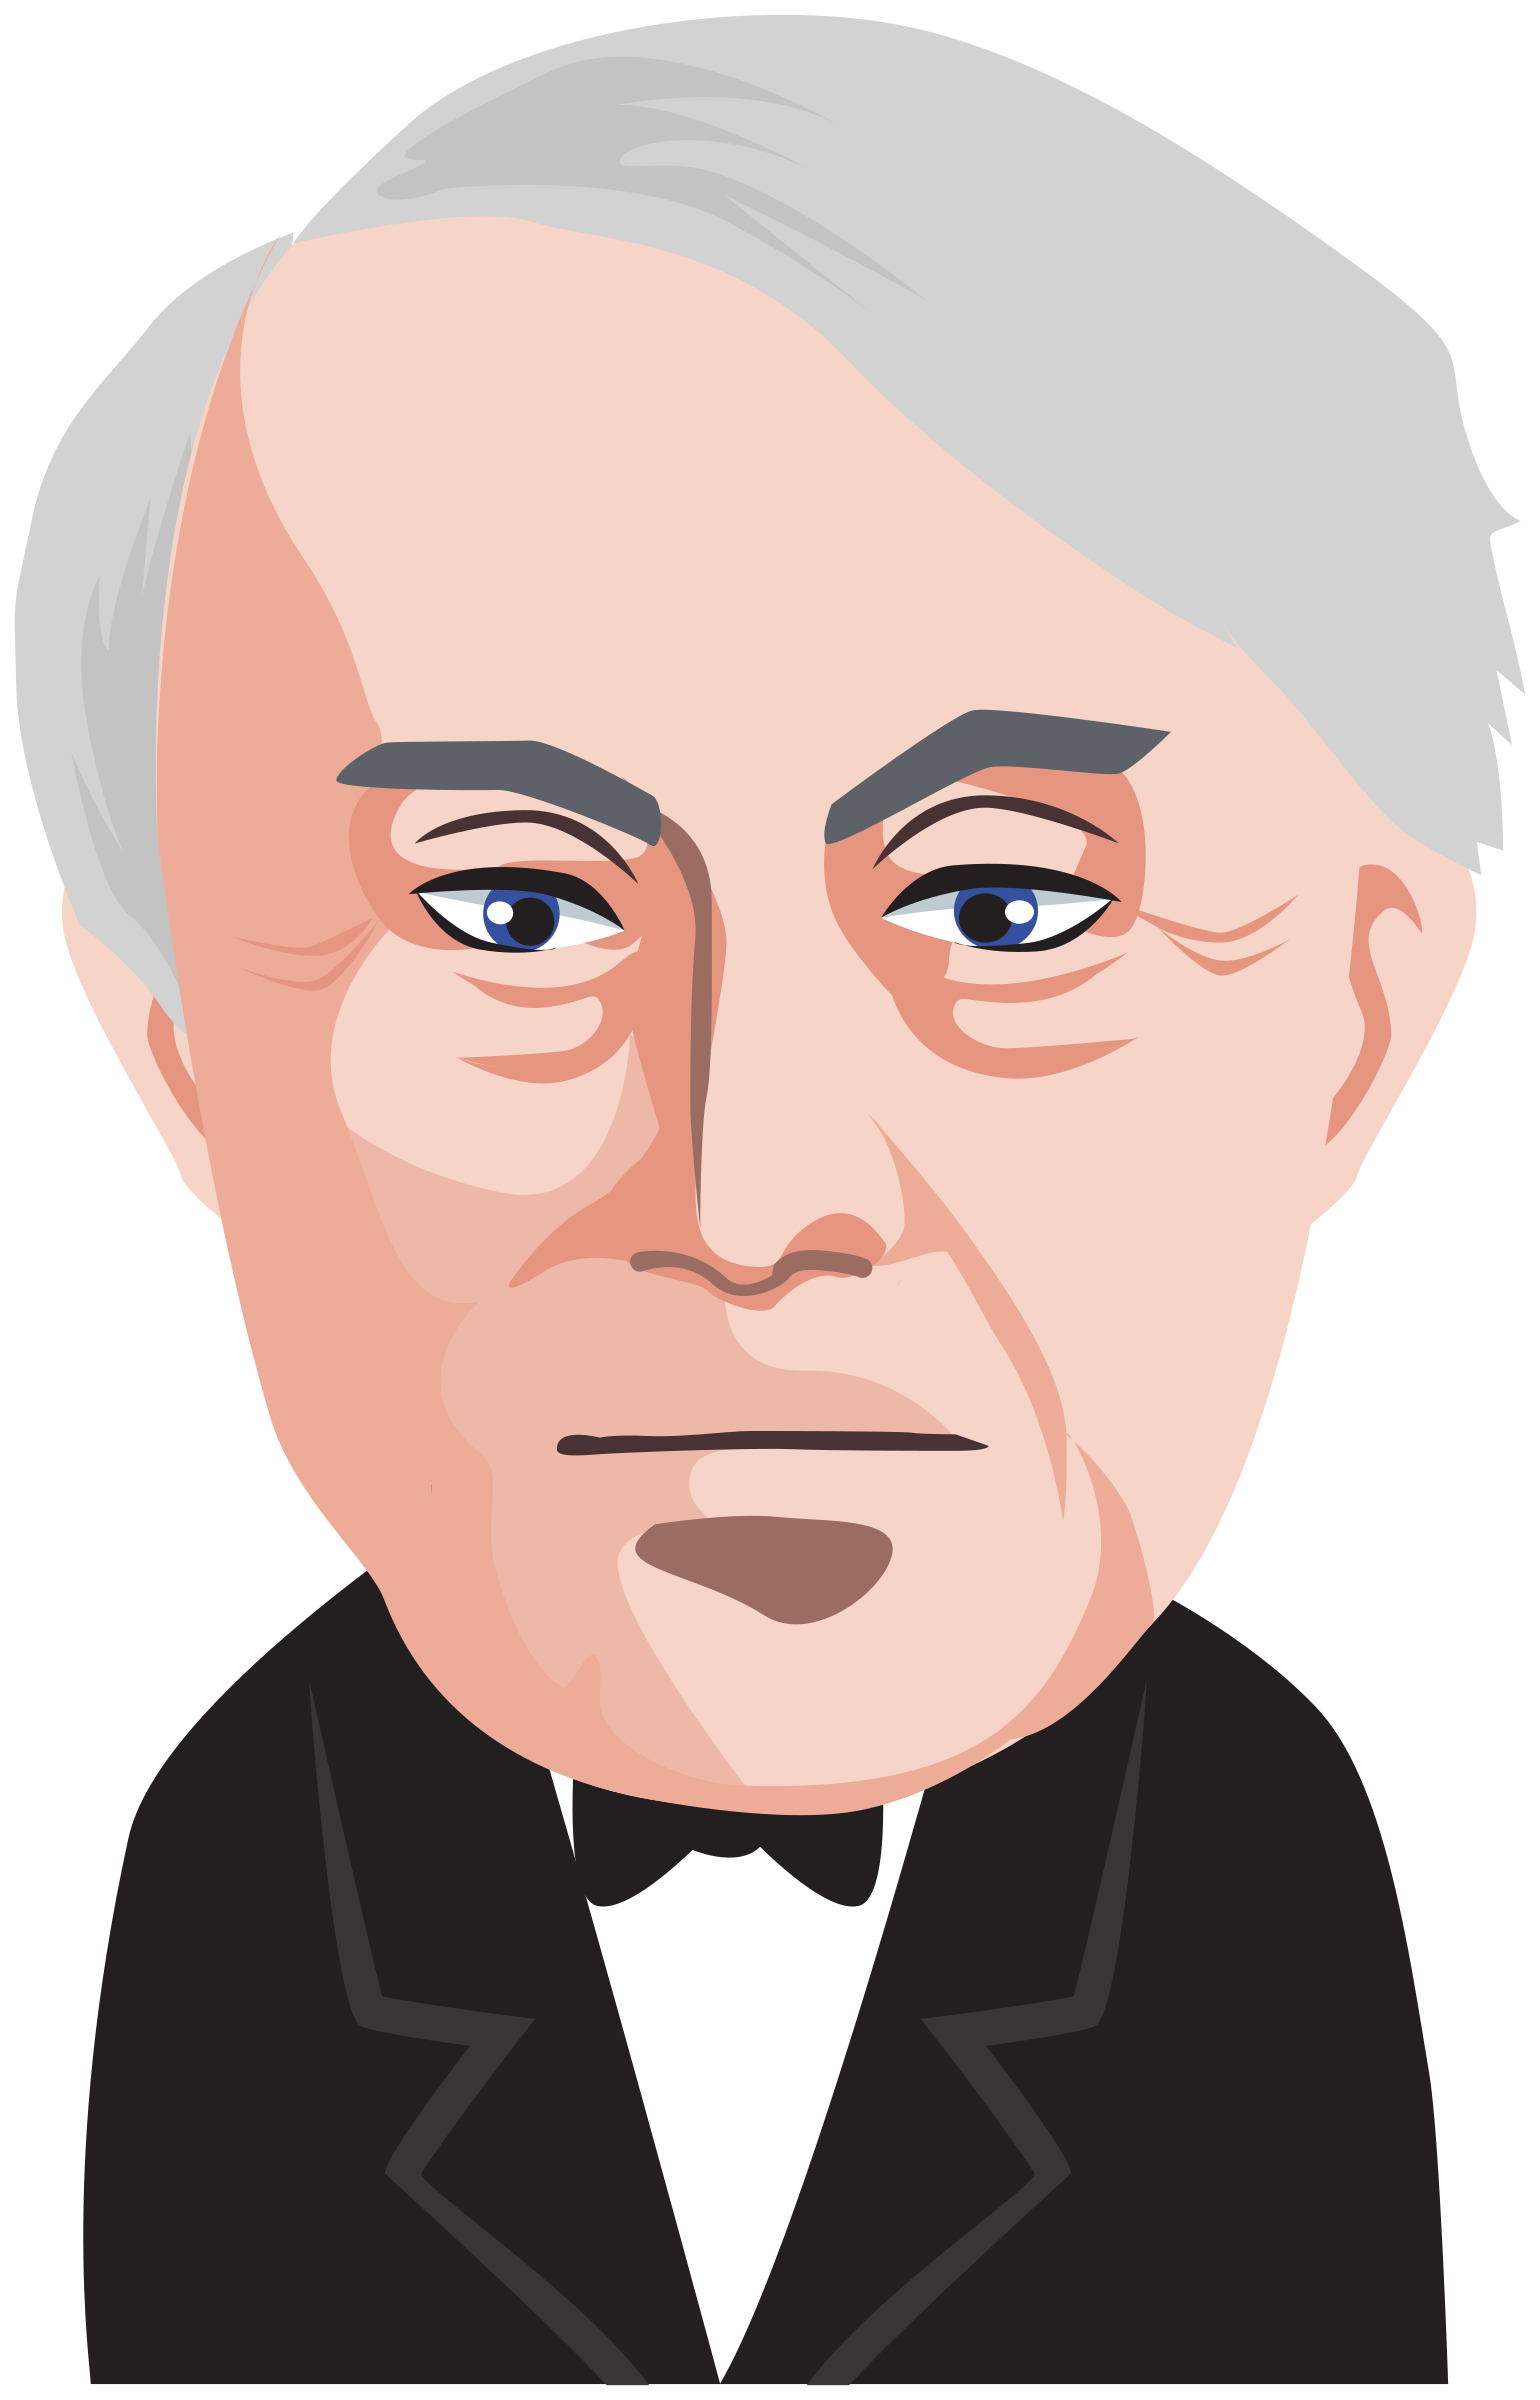 Thomas Alva Edison by Juhele